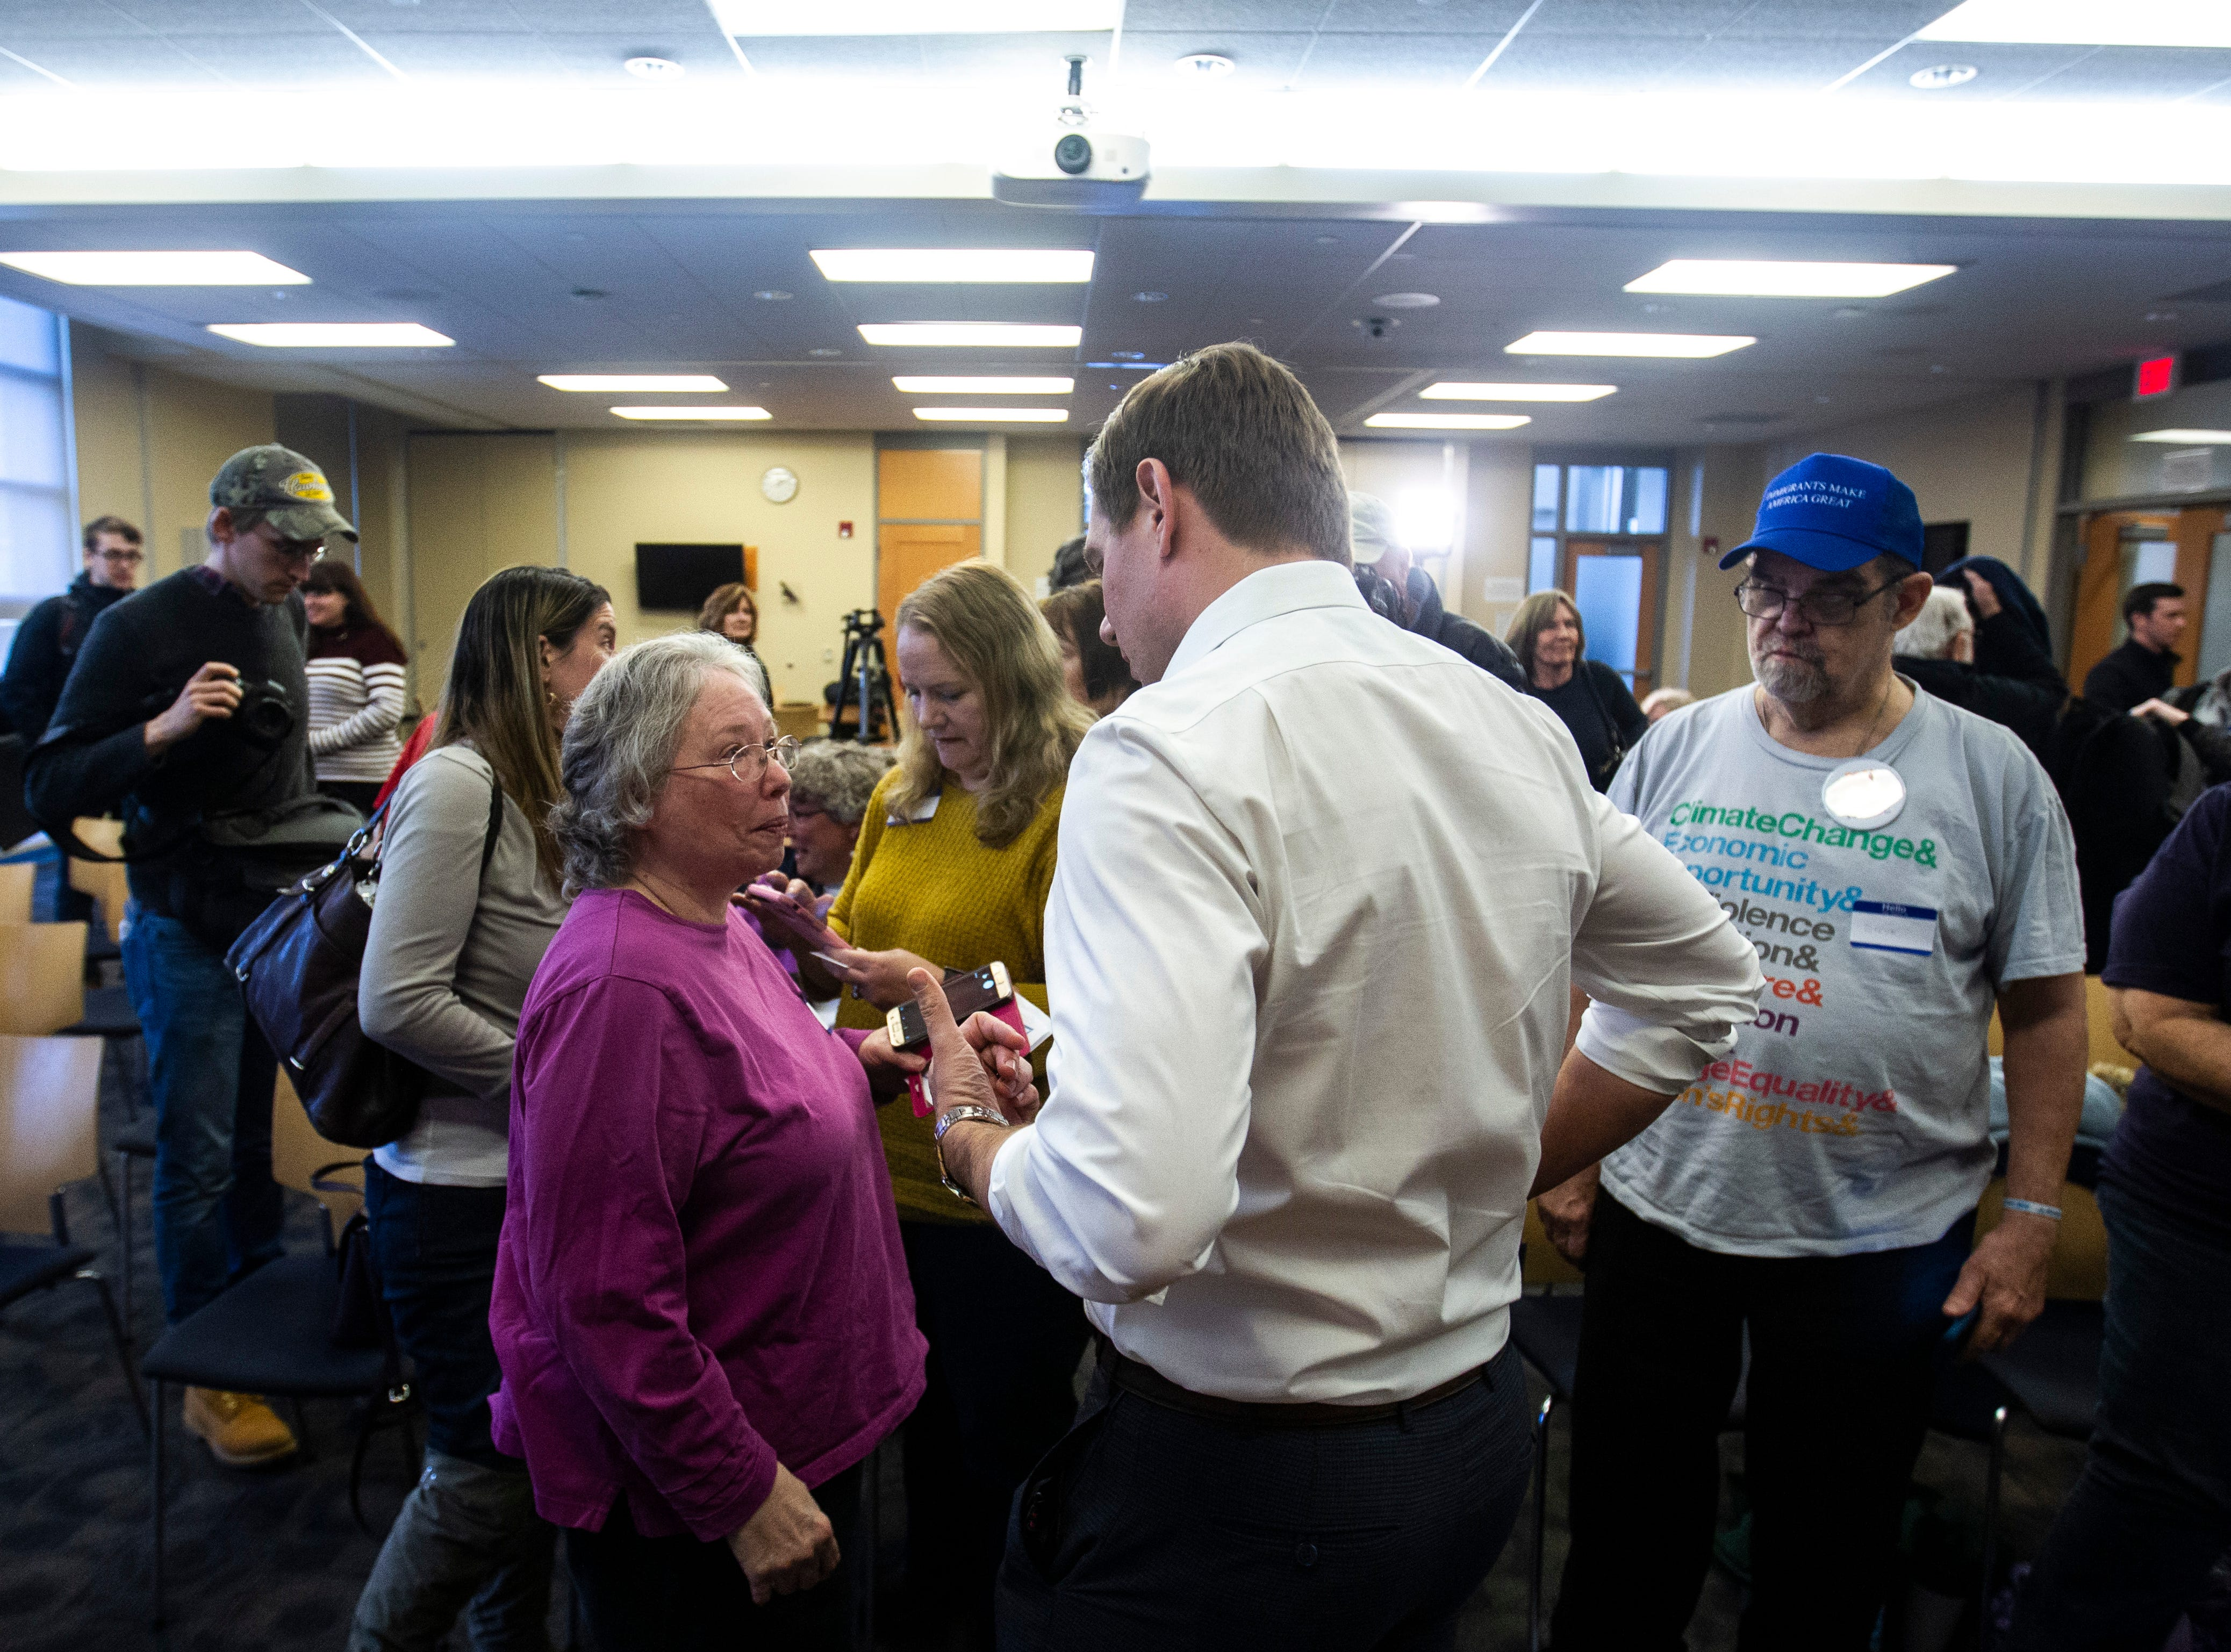 U.S. Rep. Eric Swalwell, D-Calif., talks with community members after a Working Hero Iowa event on Monday, Feb. 18, 2019 at the Public Library in Iowa City, Iowa.